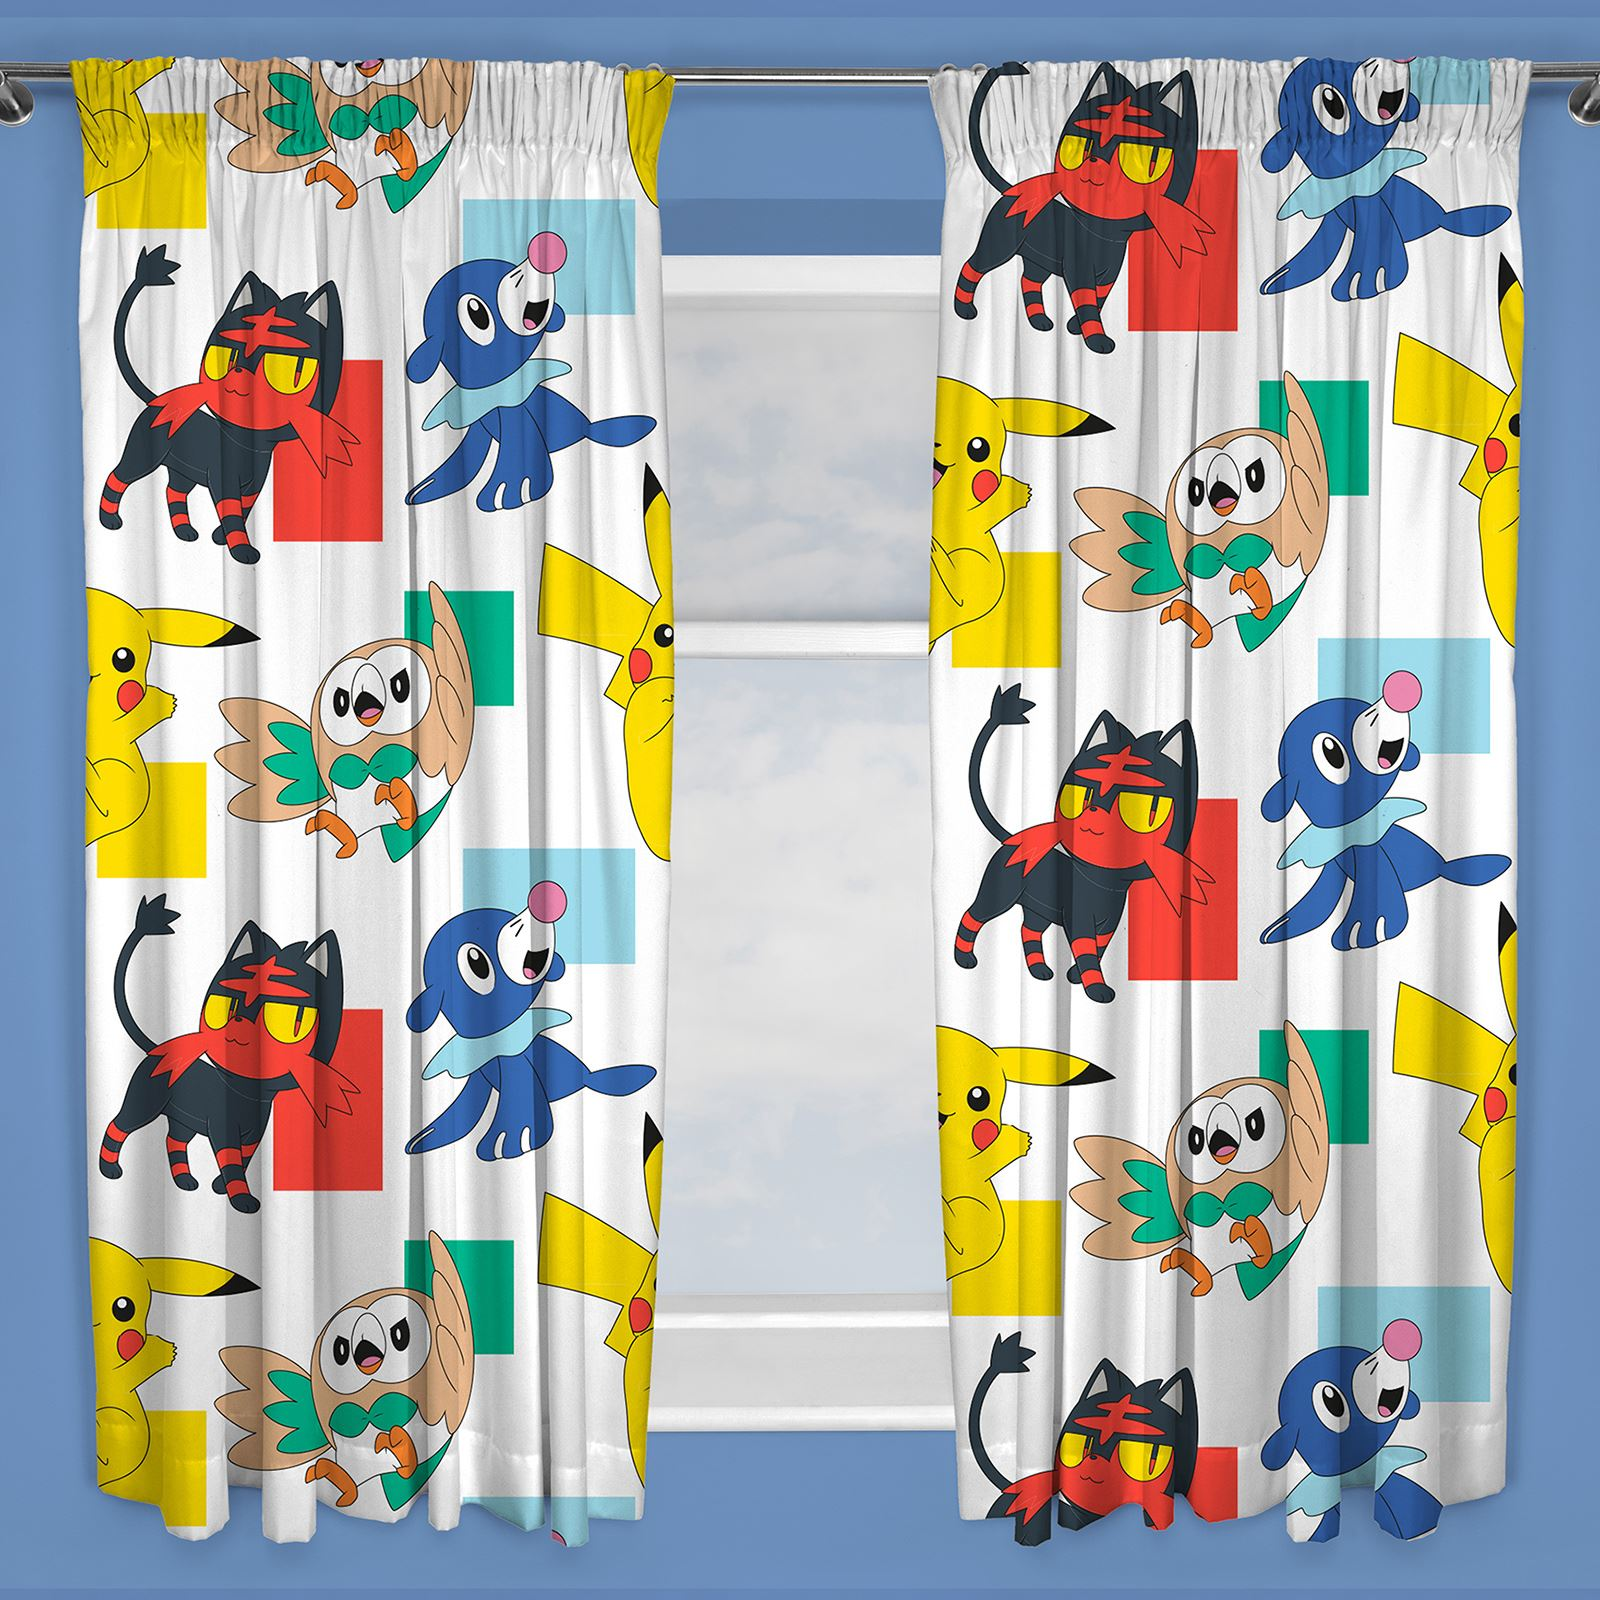 DISNEY-amp-carattere-Boys-tende-camera-da-letto-MARVEL-PAW-PATROL-POKEMON-Thomas-amp-More